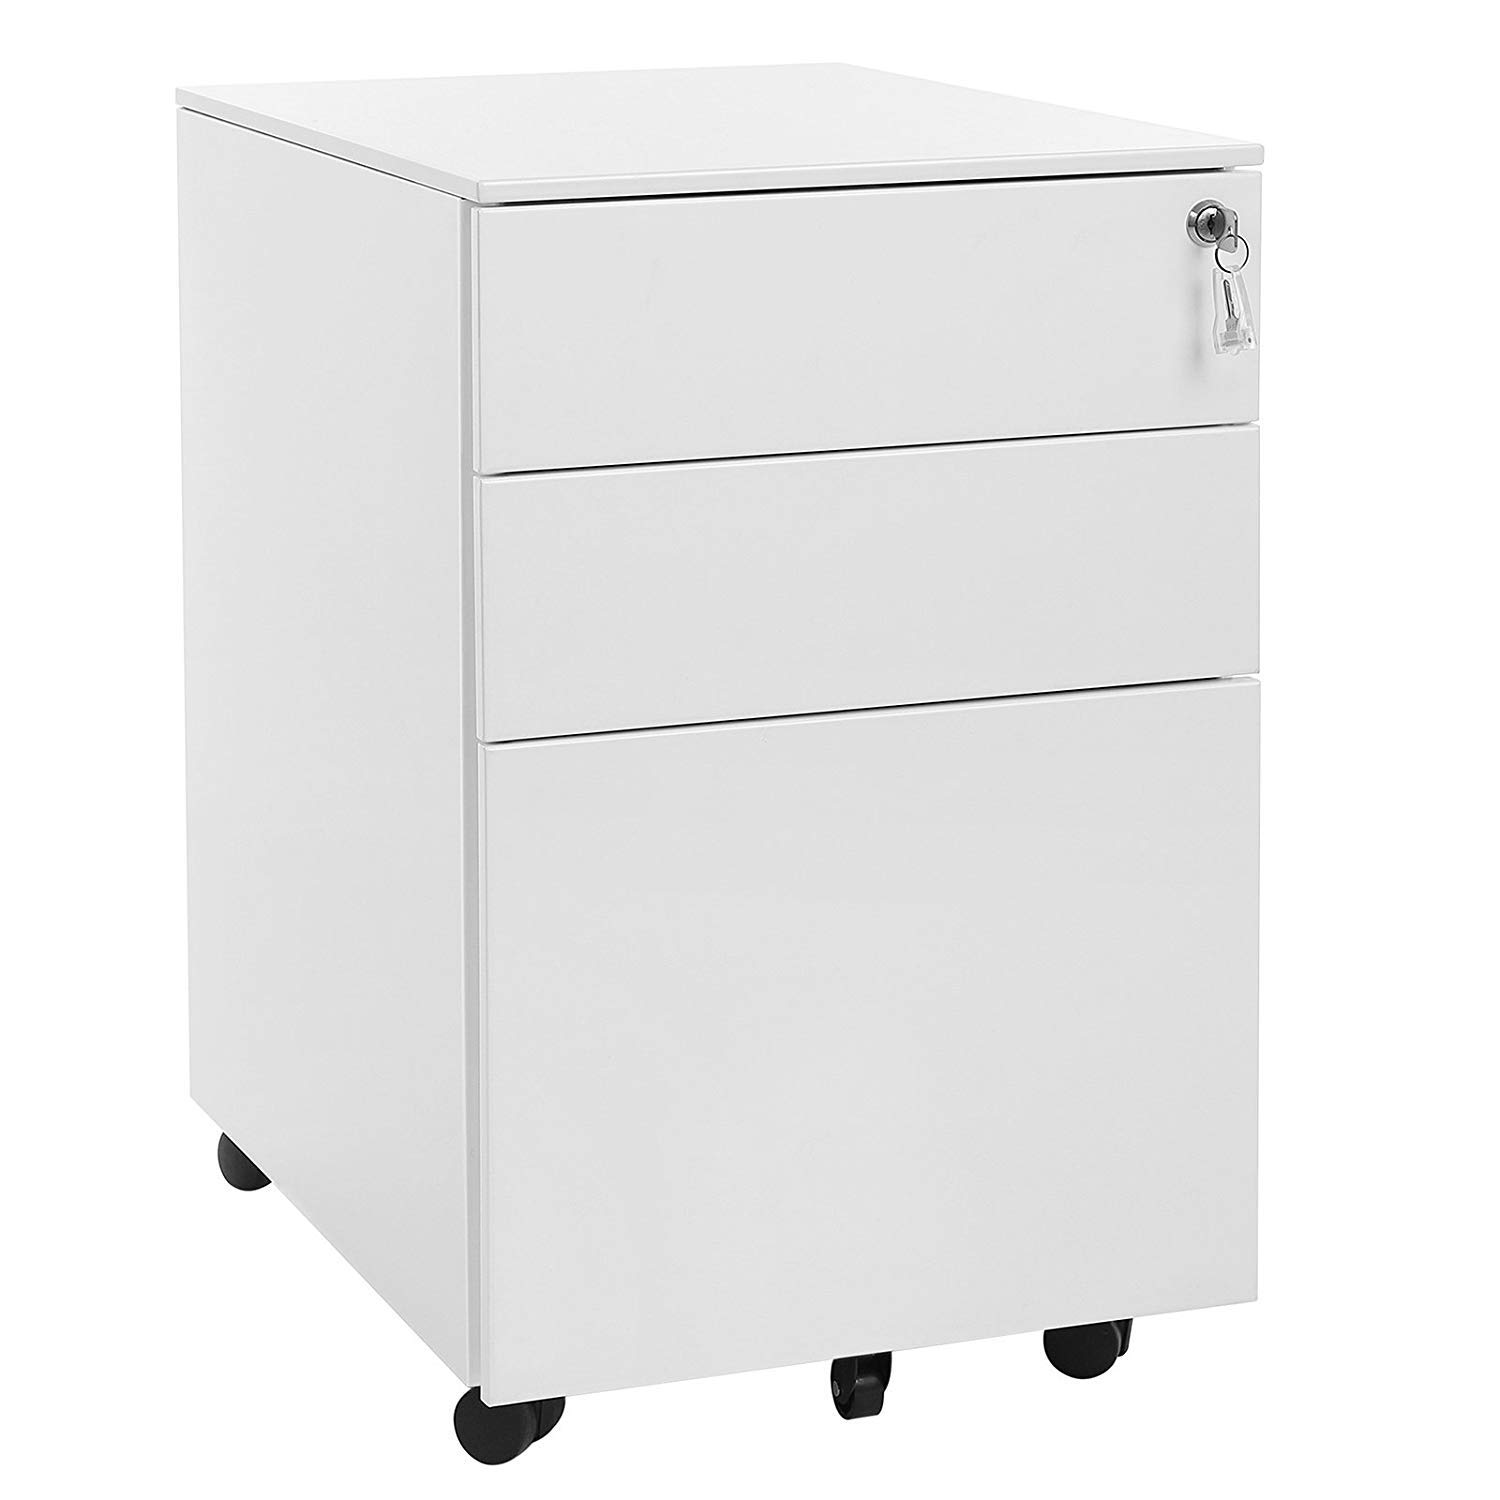 3 Drawer Metal Mobile File Cabinet with Lock Fully Assembled Except Casters (White)